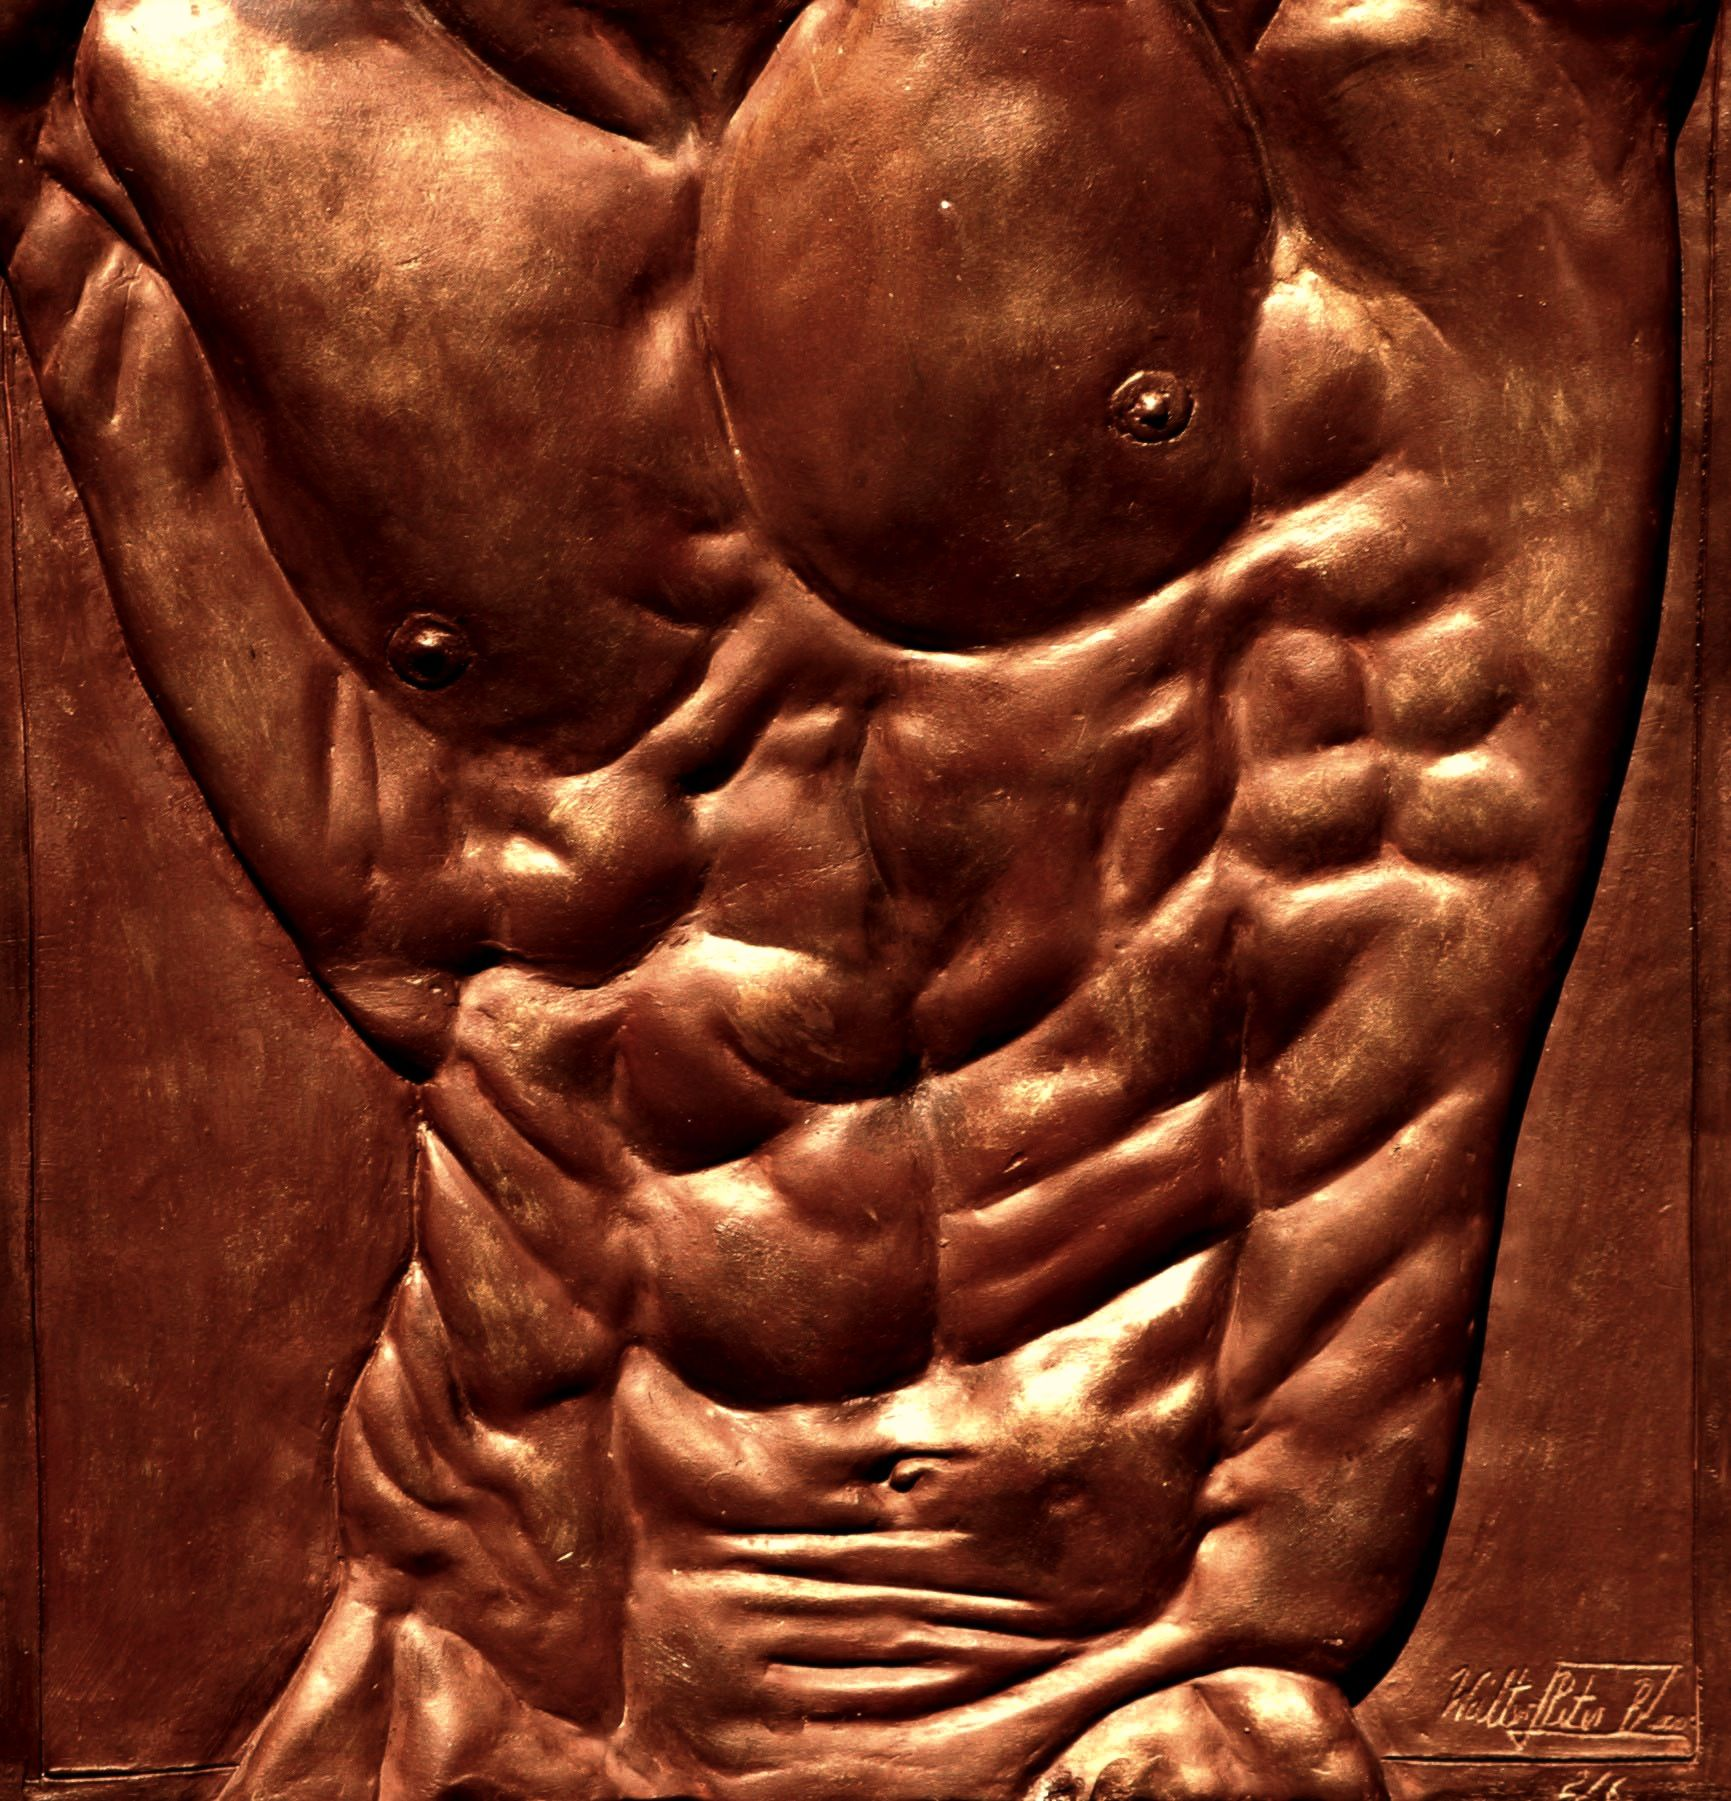 Torso of Hercules,Walter Peter Brenner,Sculpture